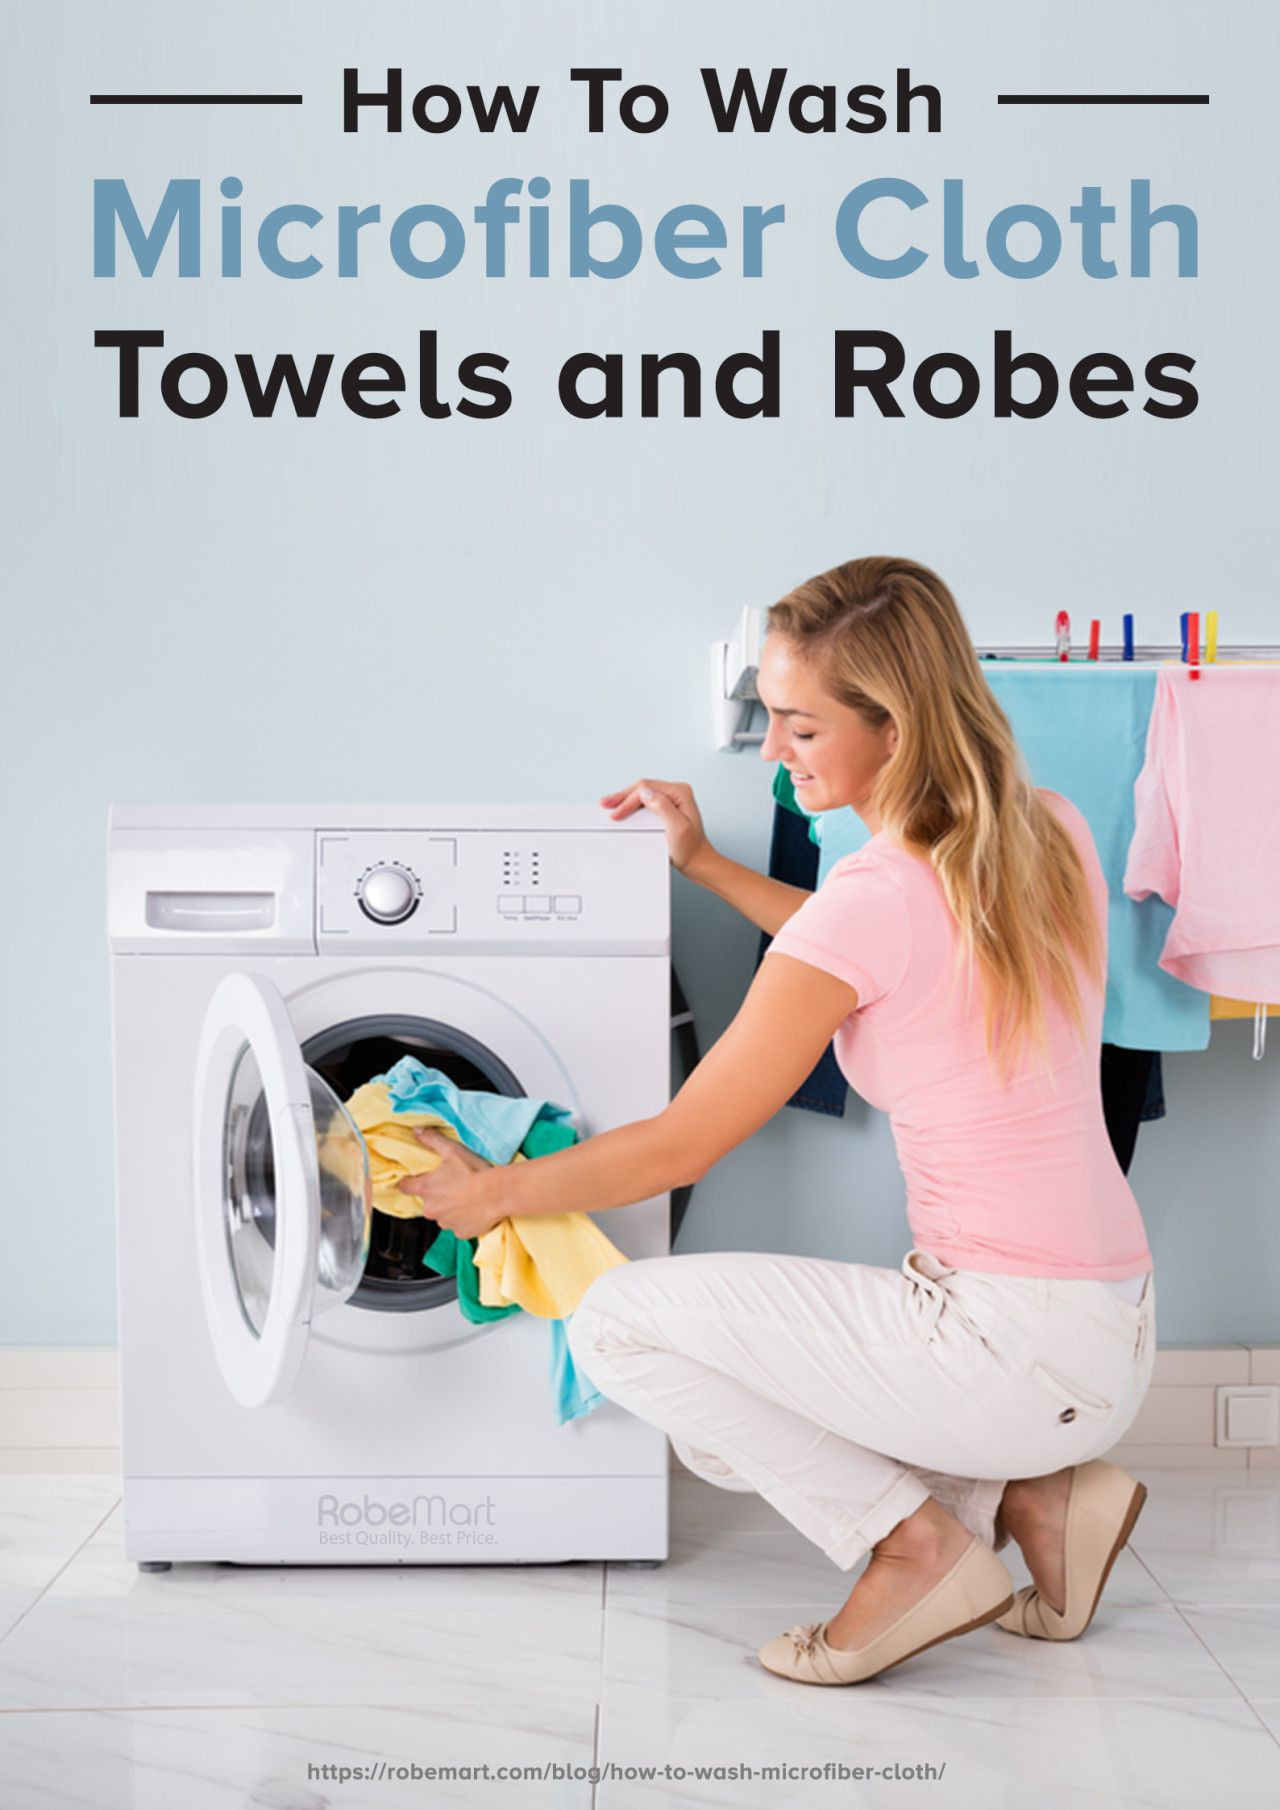 How To Wash Microfiber Cloth Towels And Robes No Pills Allowed Microfiber Cloth Microfiber Cleaning Clothes